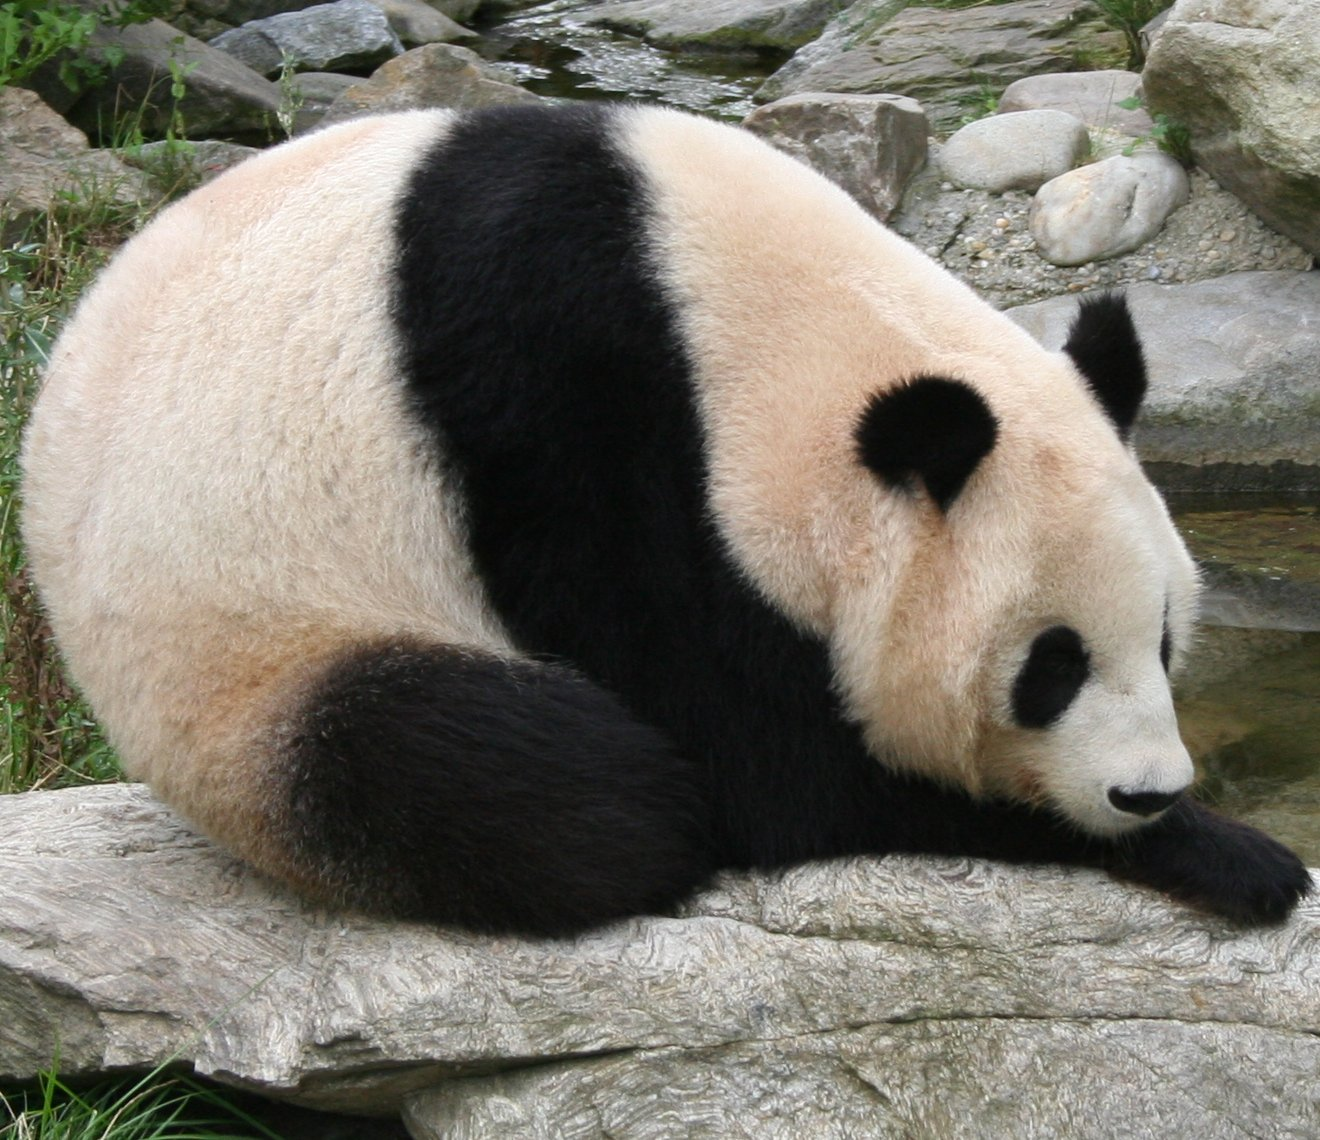 https://i1.wp.com/upload.wikimedia.org/wikipedia/commons/1/19/Giant_panda_at_Vienna_Zoo_%28cropped%29.jpg